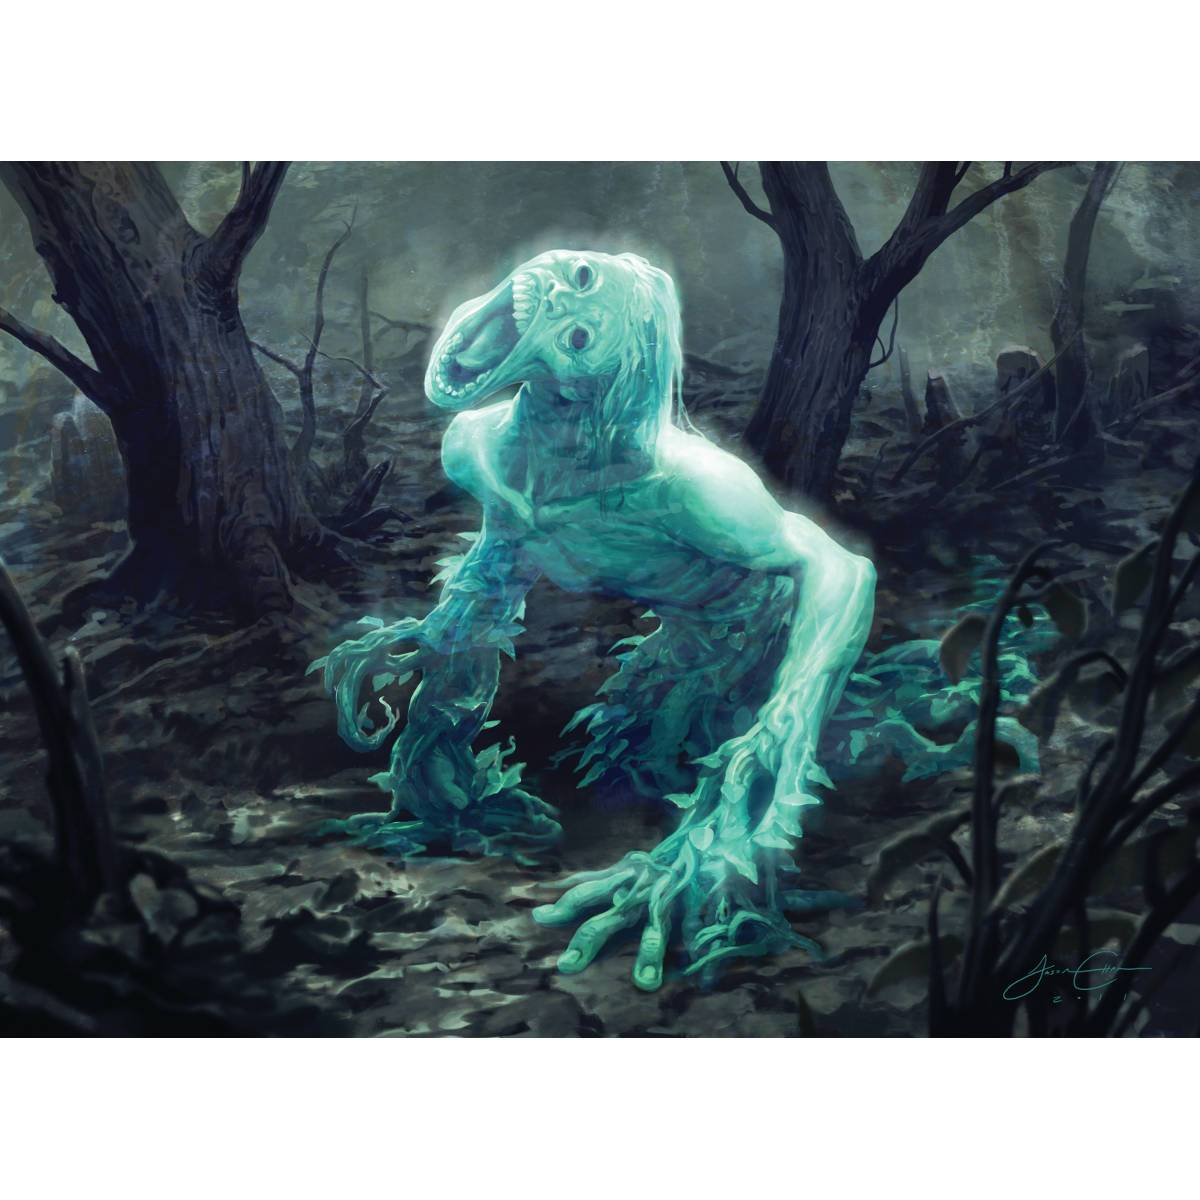 Strangleroot Geist Print - Print - Original Magic Art - Accessories for Magic the Gathering and other card games